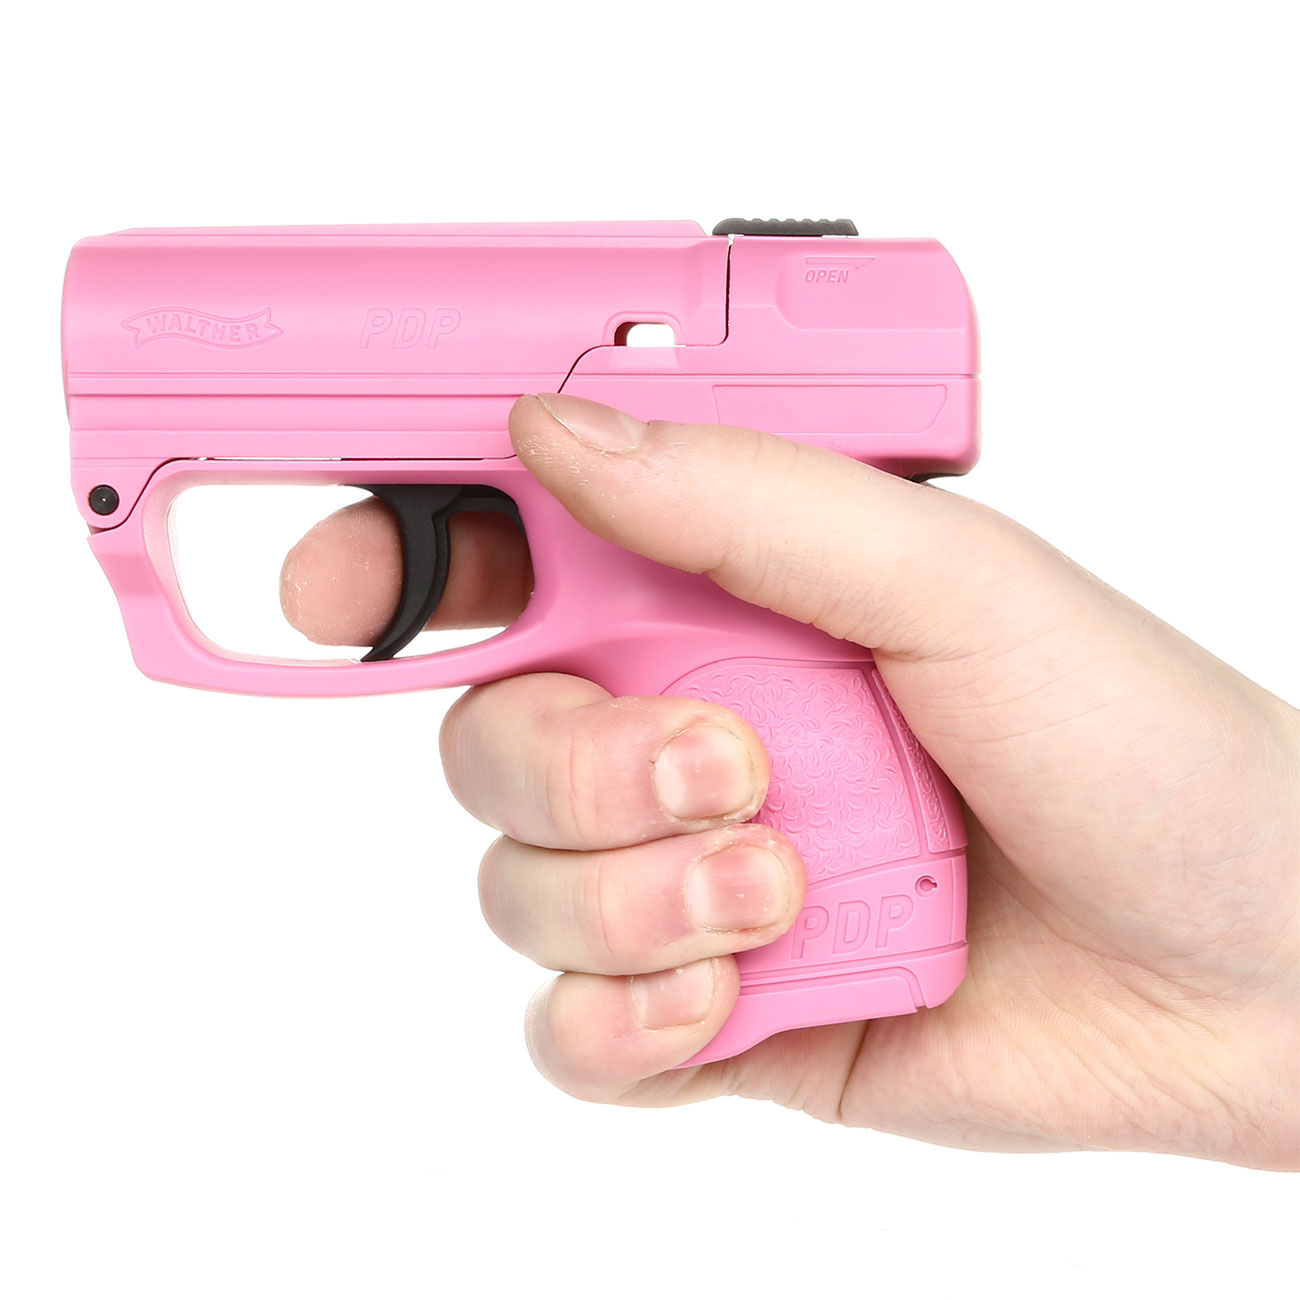 Walther Pfefferpistole PDP pink 8